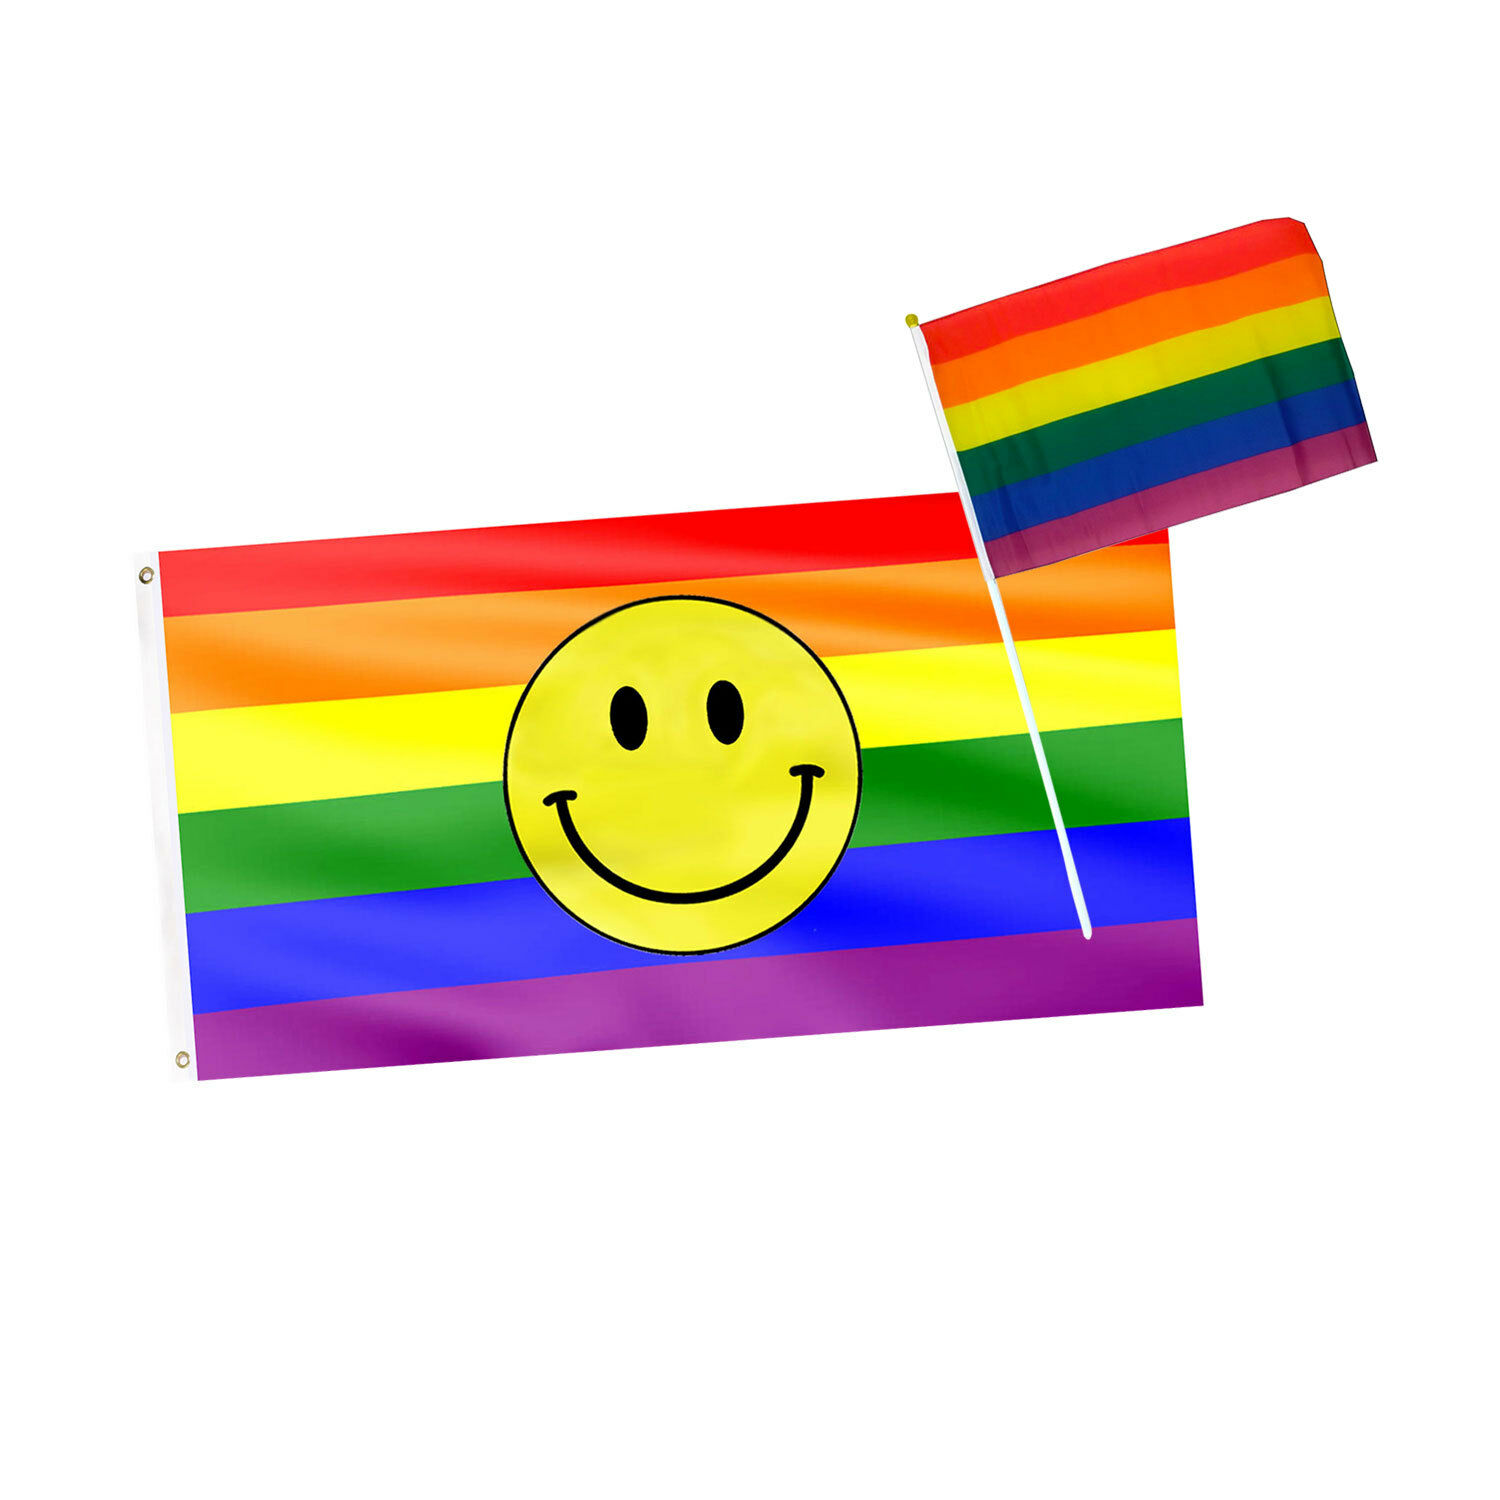 Details about Gay Pride LGBT Waving Flags Smiley Emoji Rainbow Large  Festival Flag / Cape Set